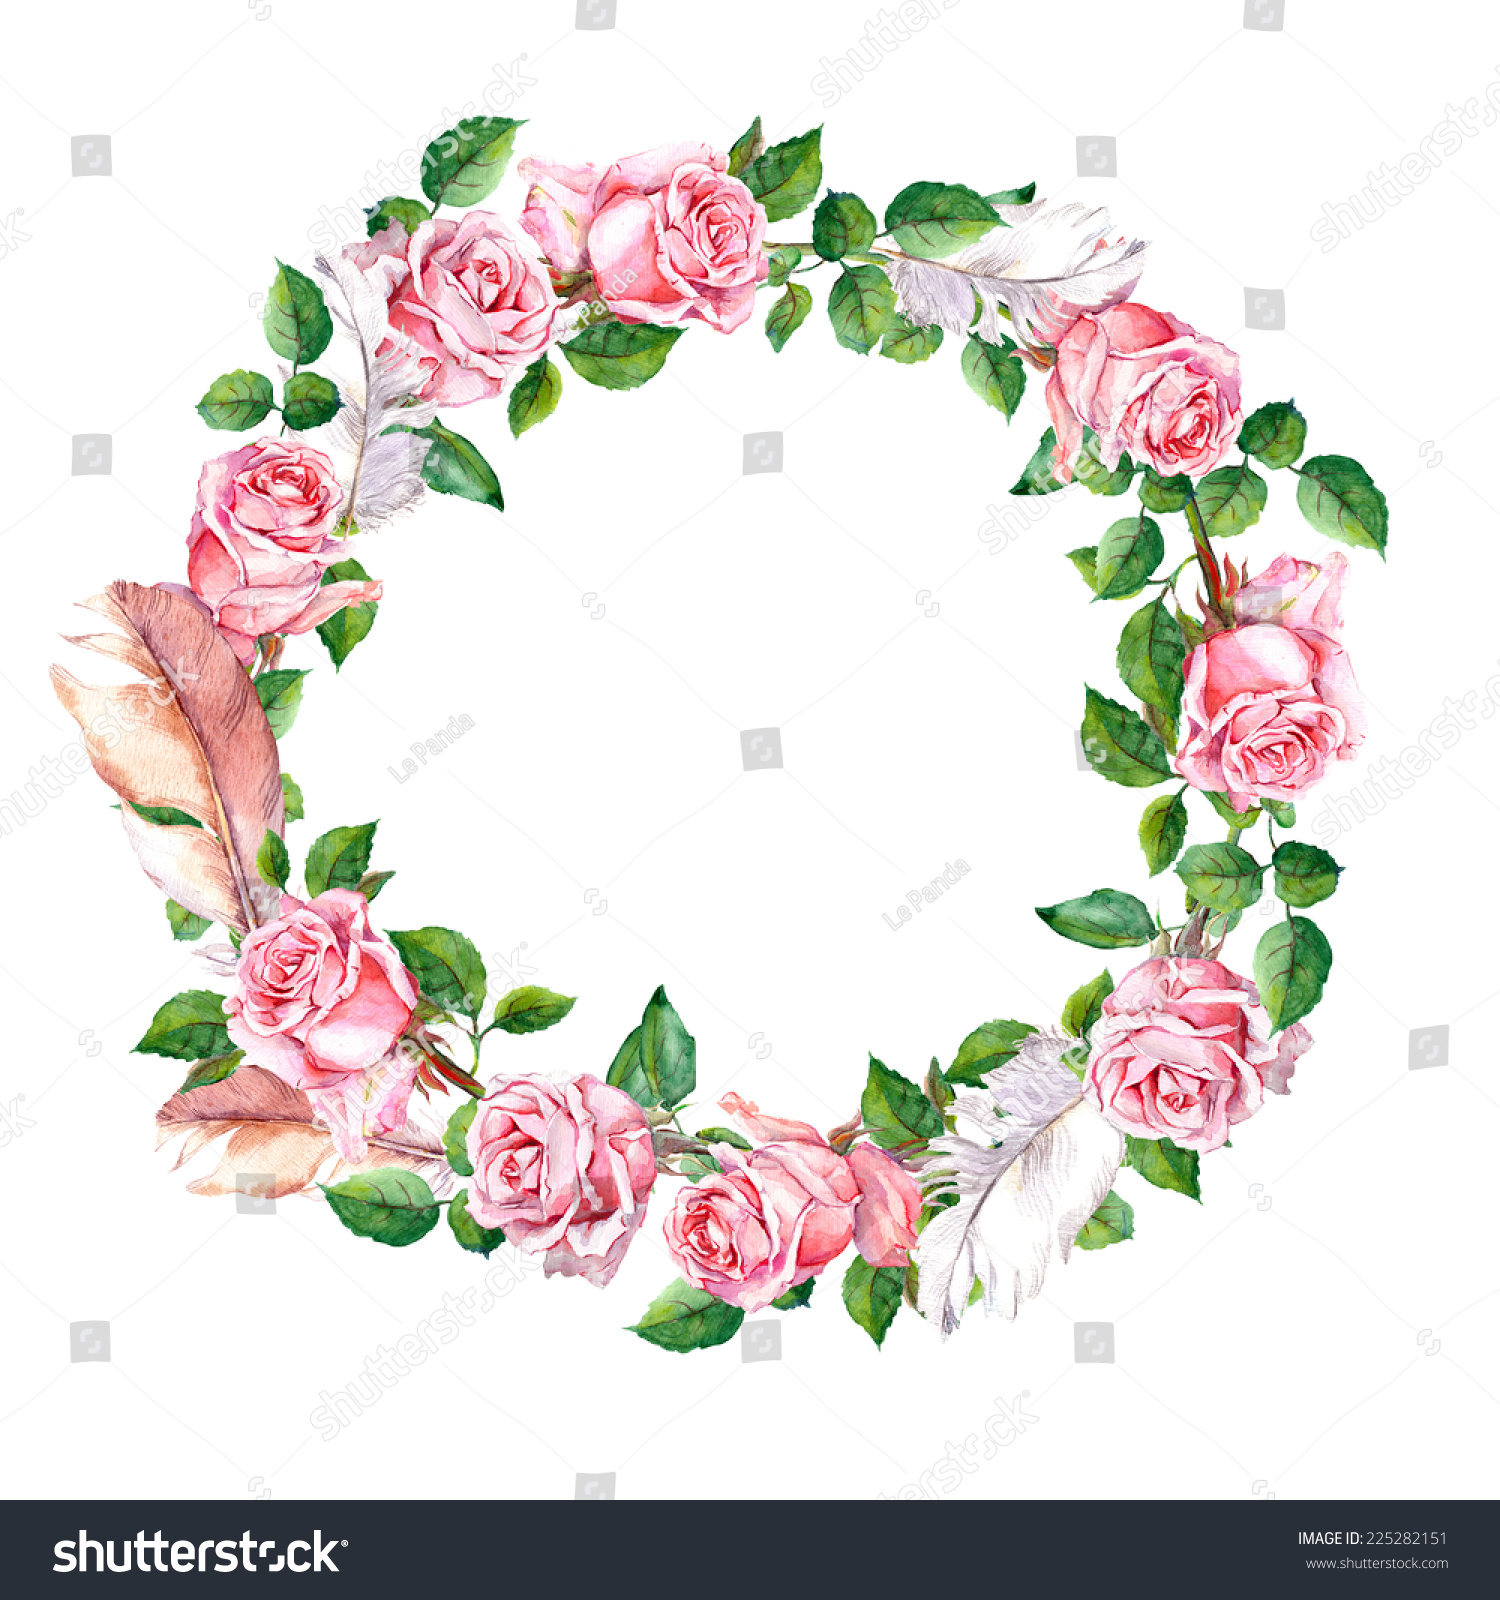 ... Waverly forter Sets Queen additionally Daisy Flower Clip Art. on rose